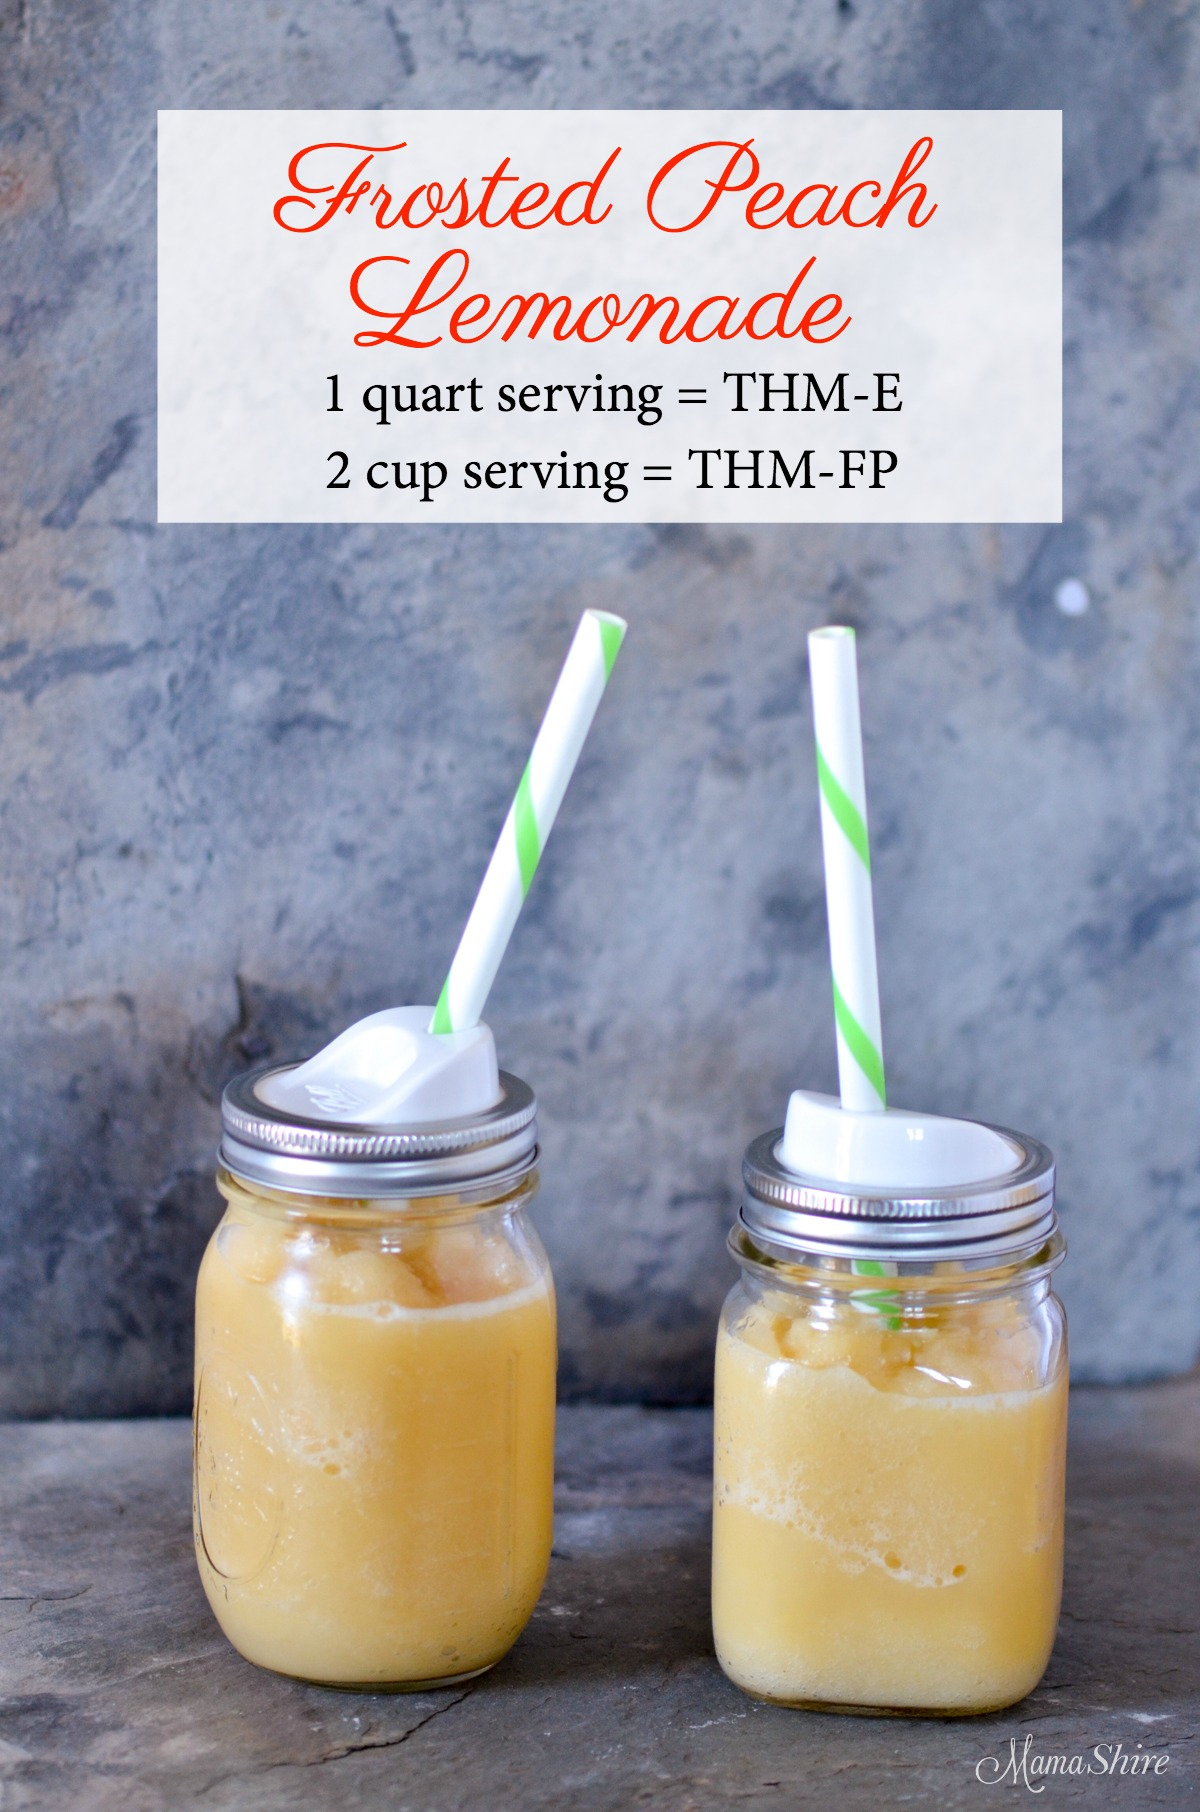 Frosted Peach Lemonade 2 cup servings- THM-FP